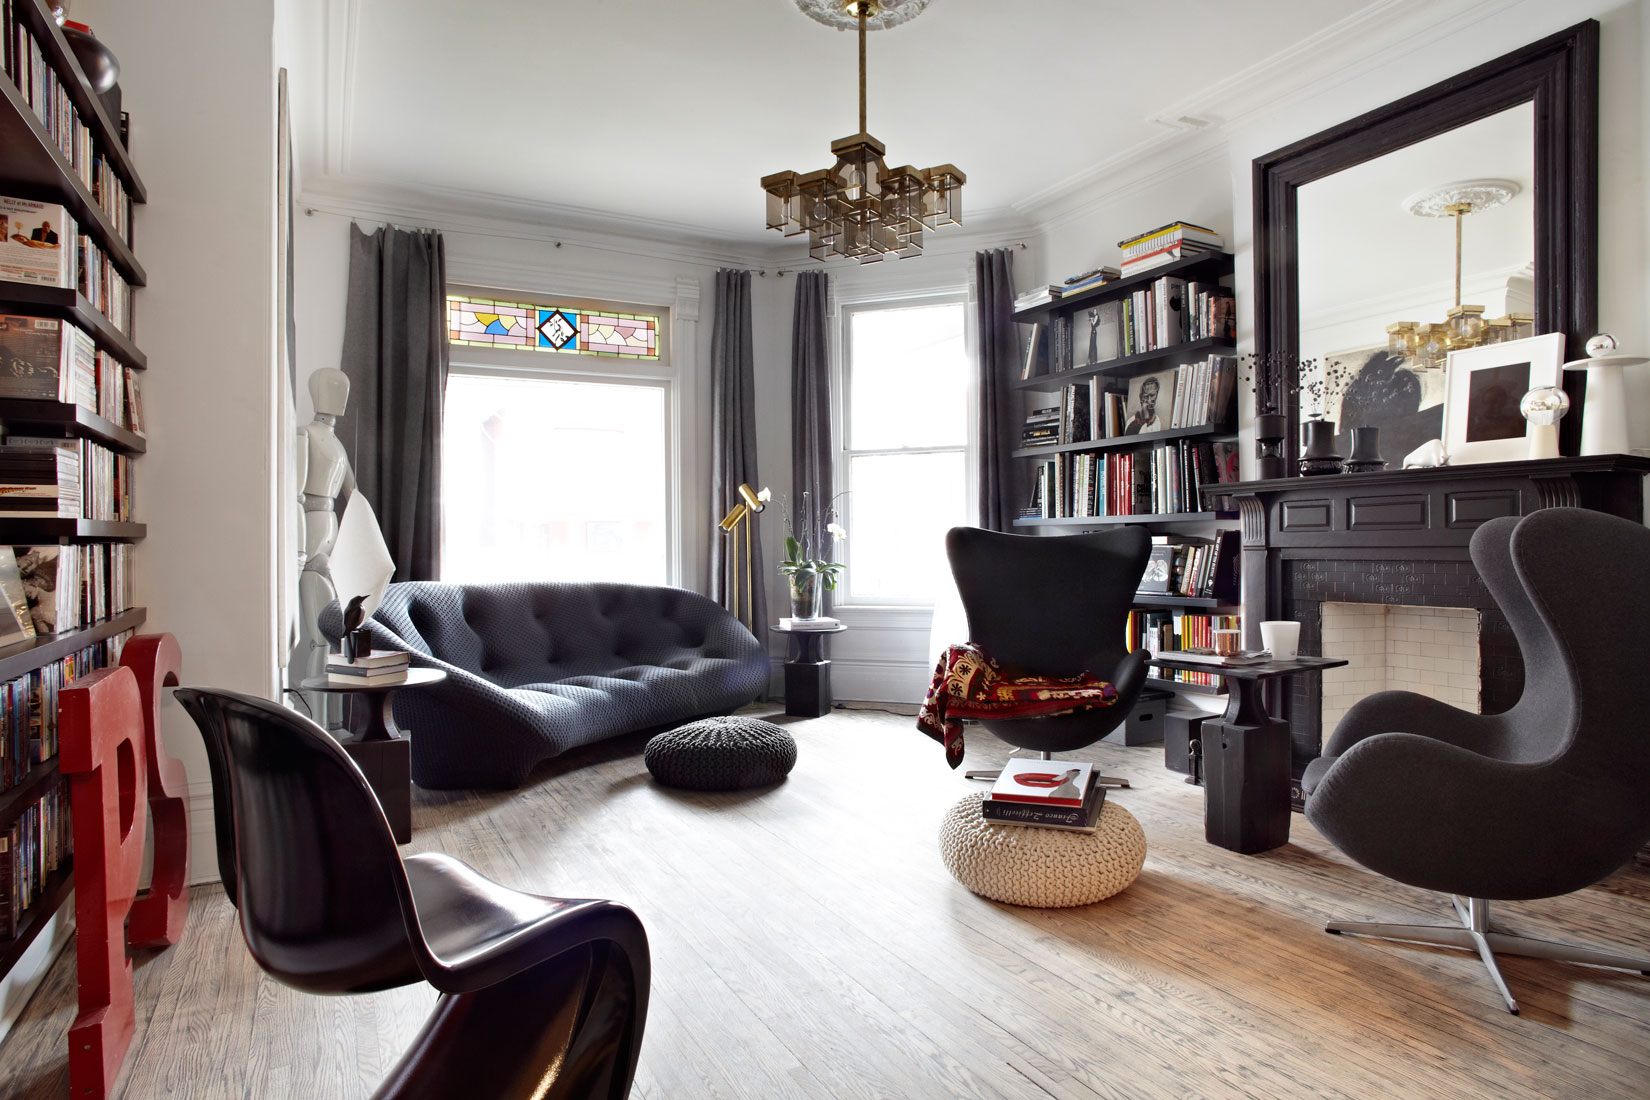 Black Furniture: Interior Design Photo Ideas. Contemporary noir style with lots of decorative elements and statuettes